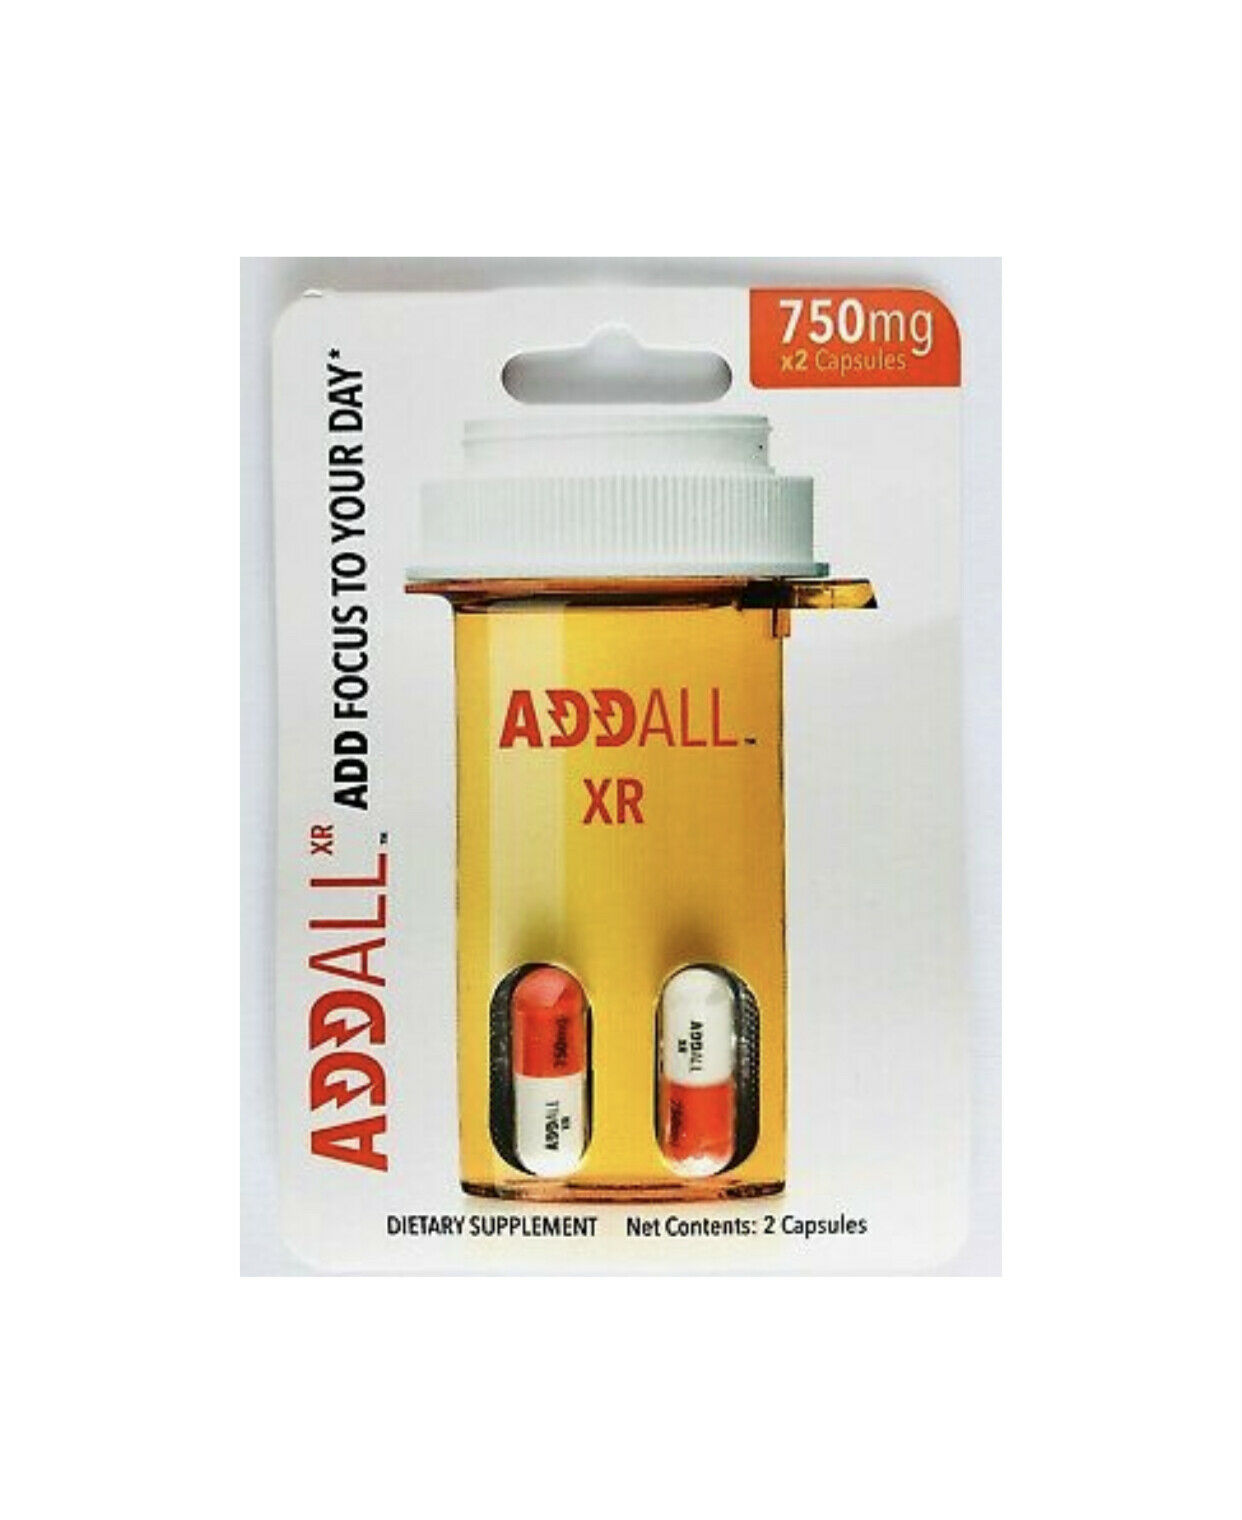 Addall XR Energy Focus Memory Concentration Relax 750mg 3 pack - 6 pills